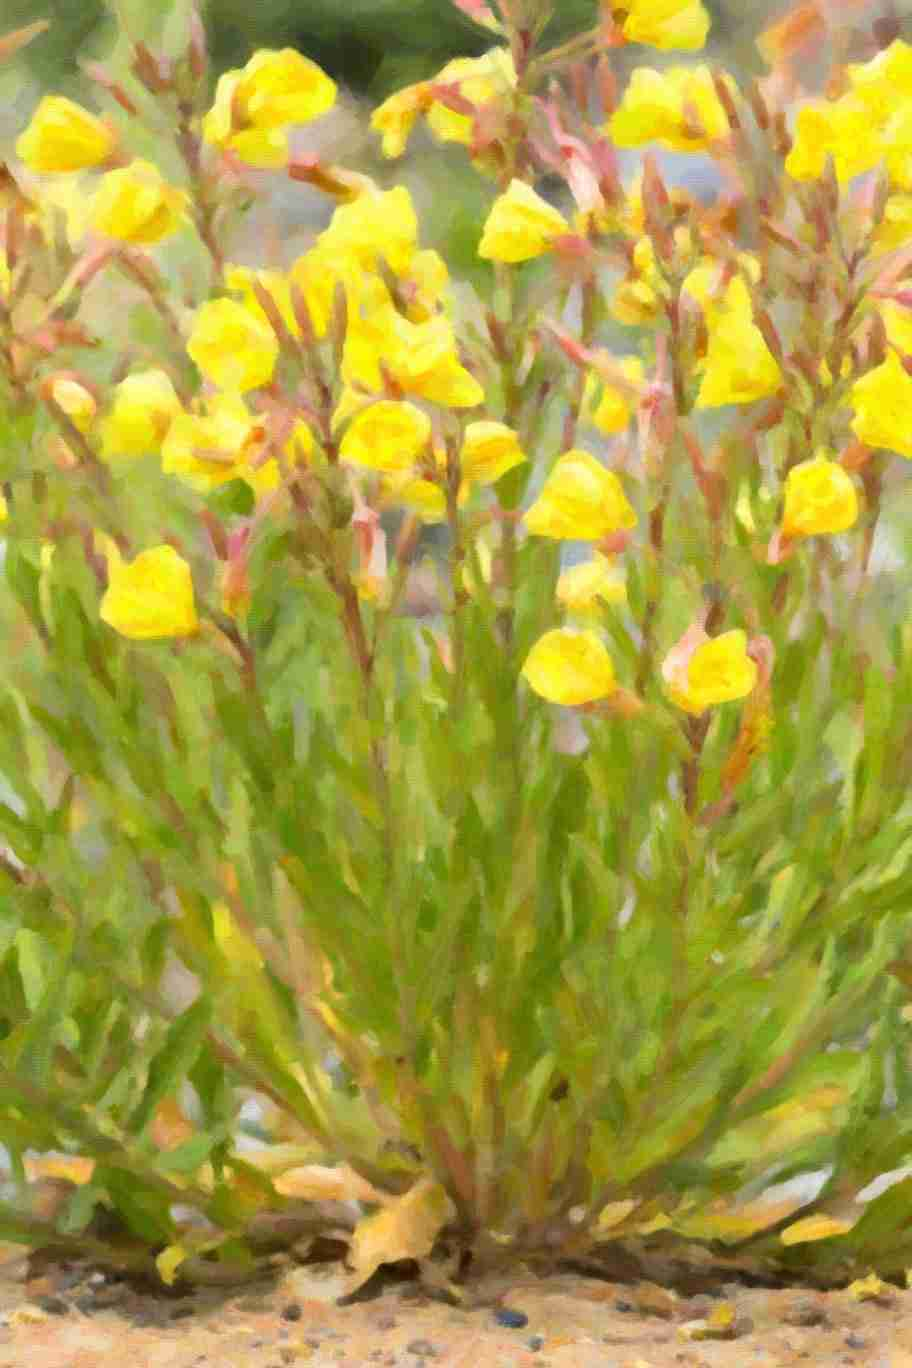 Print of yellow wildflowers growing in the sand deetlebop art print of yellow wildflowers growing in the sand mightylinksfo